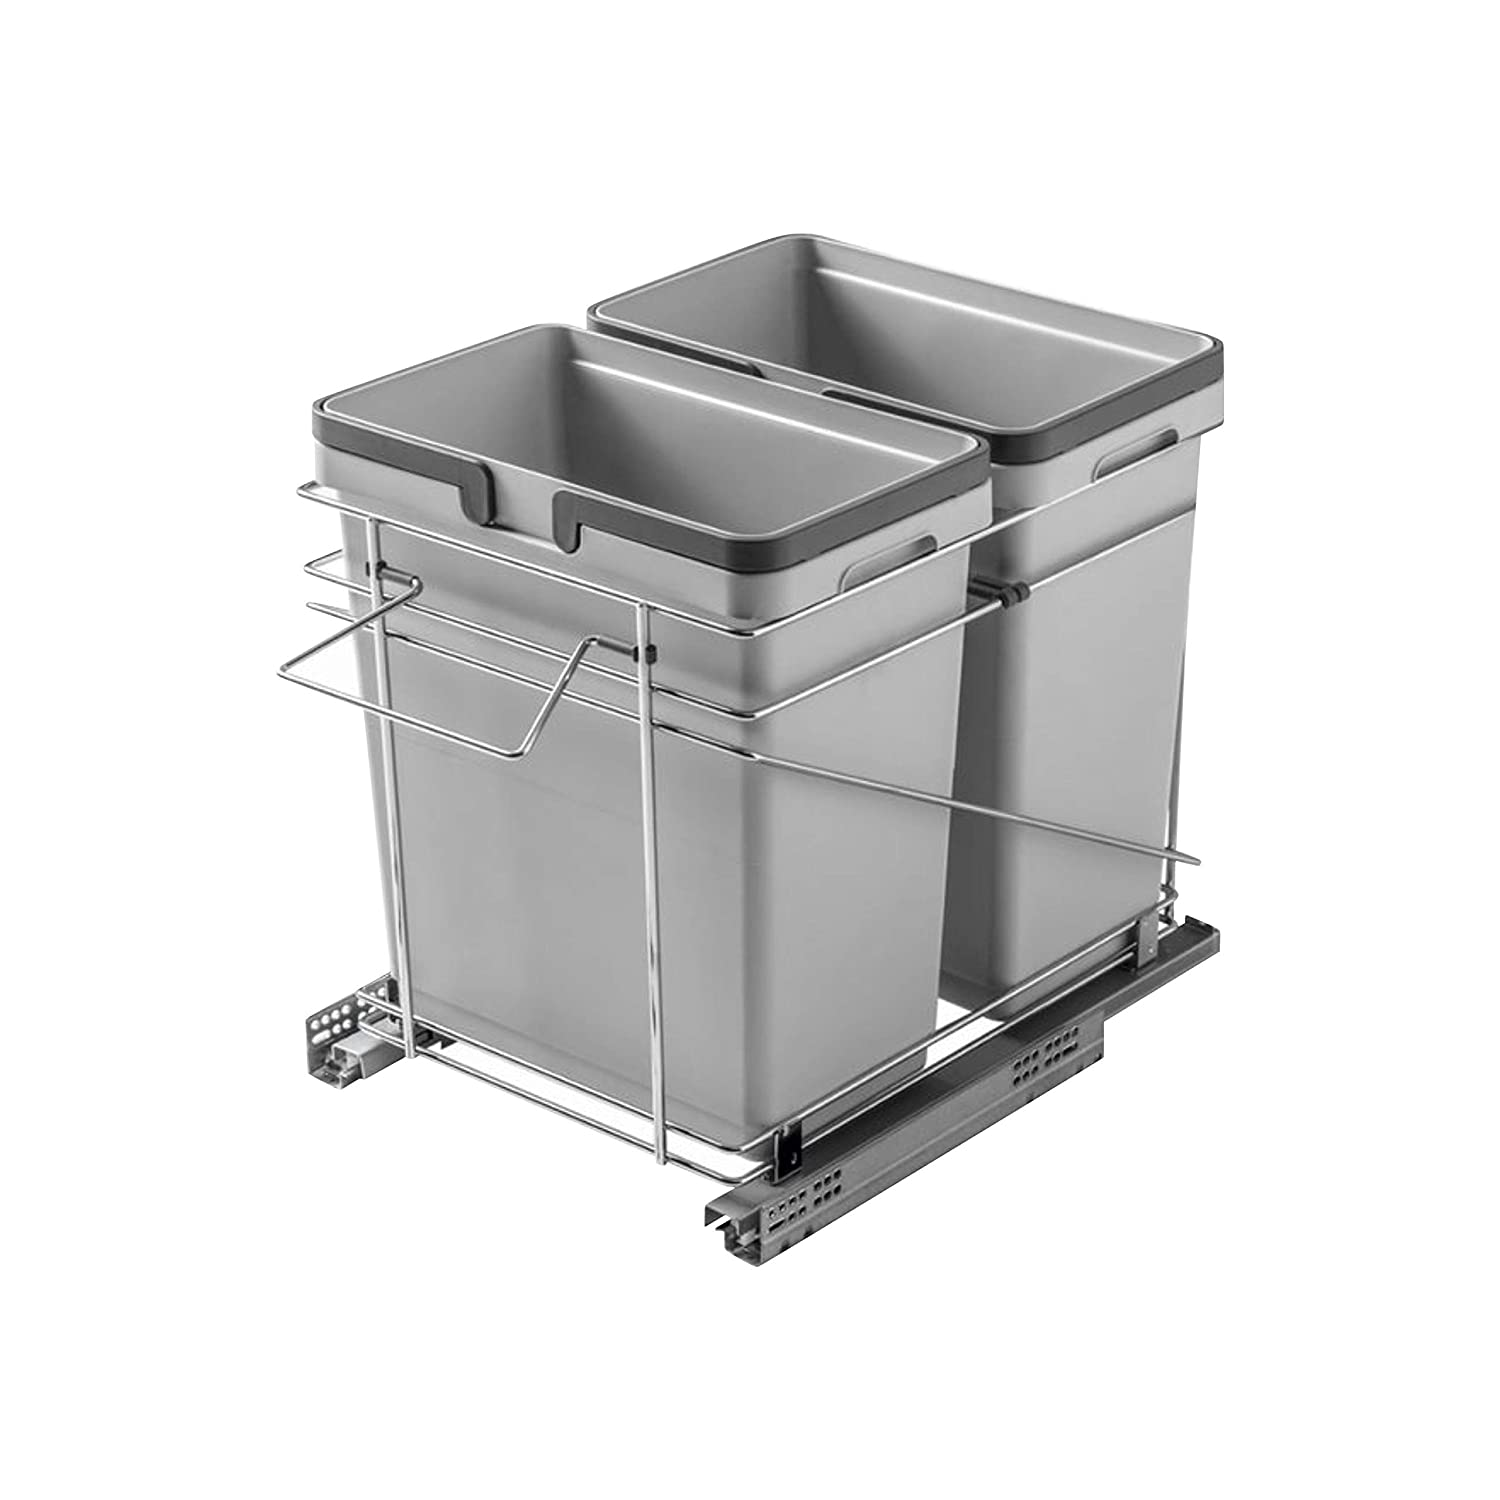 """Rok Salice Kitchen Cabinet Soft Close Heavy Duty Waste Recycle Bin Trash Can Pull Out Organizer Container QPAM15228C (Double 15"""" (32 Quart Bins))"""